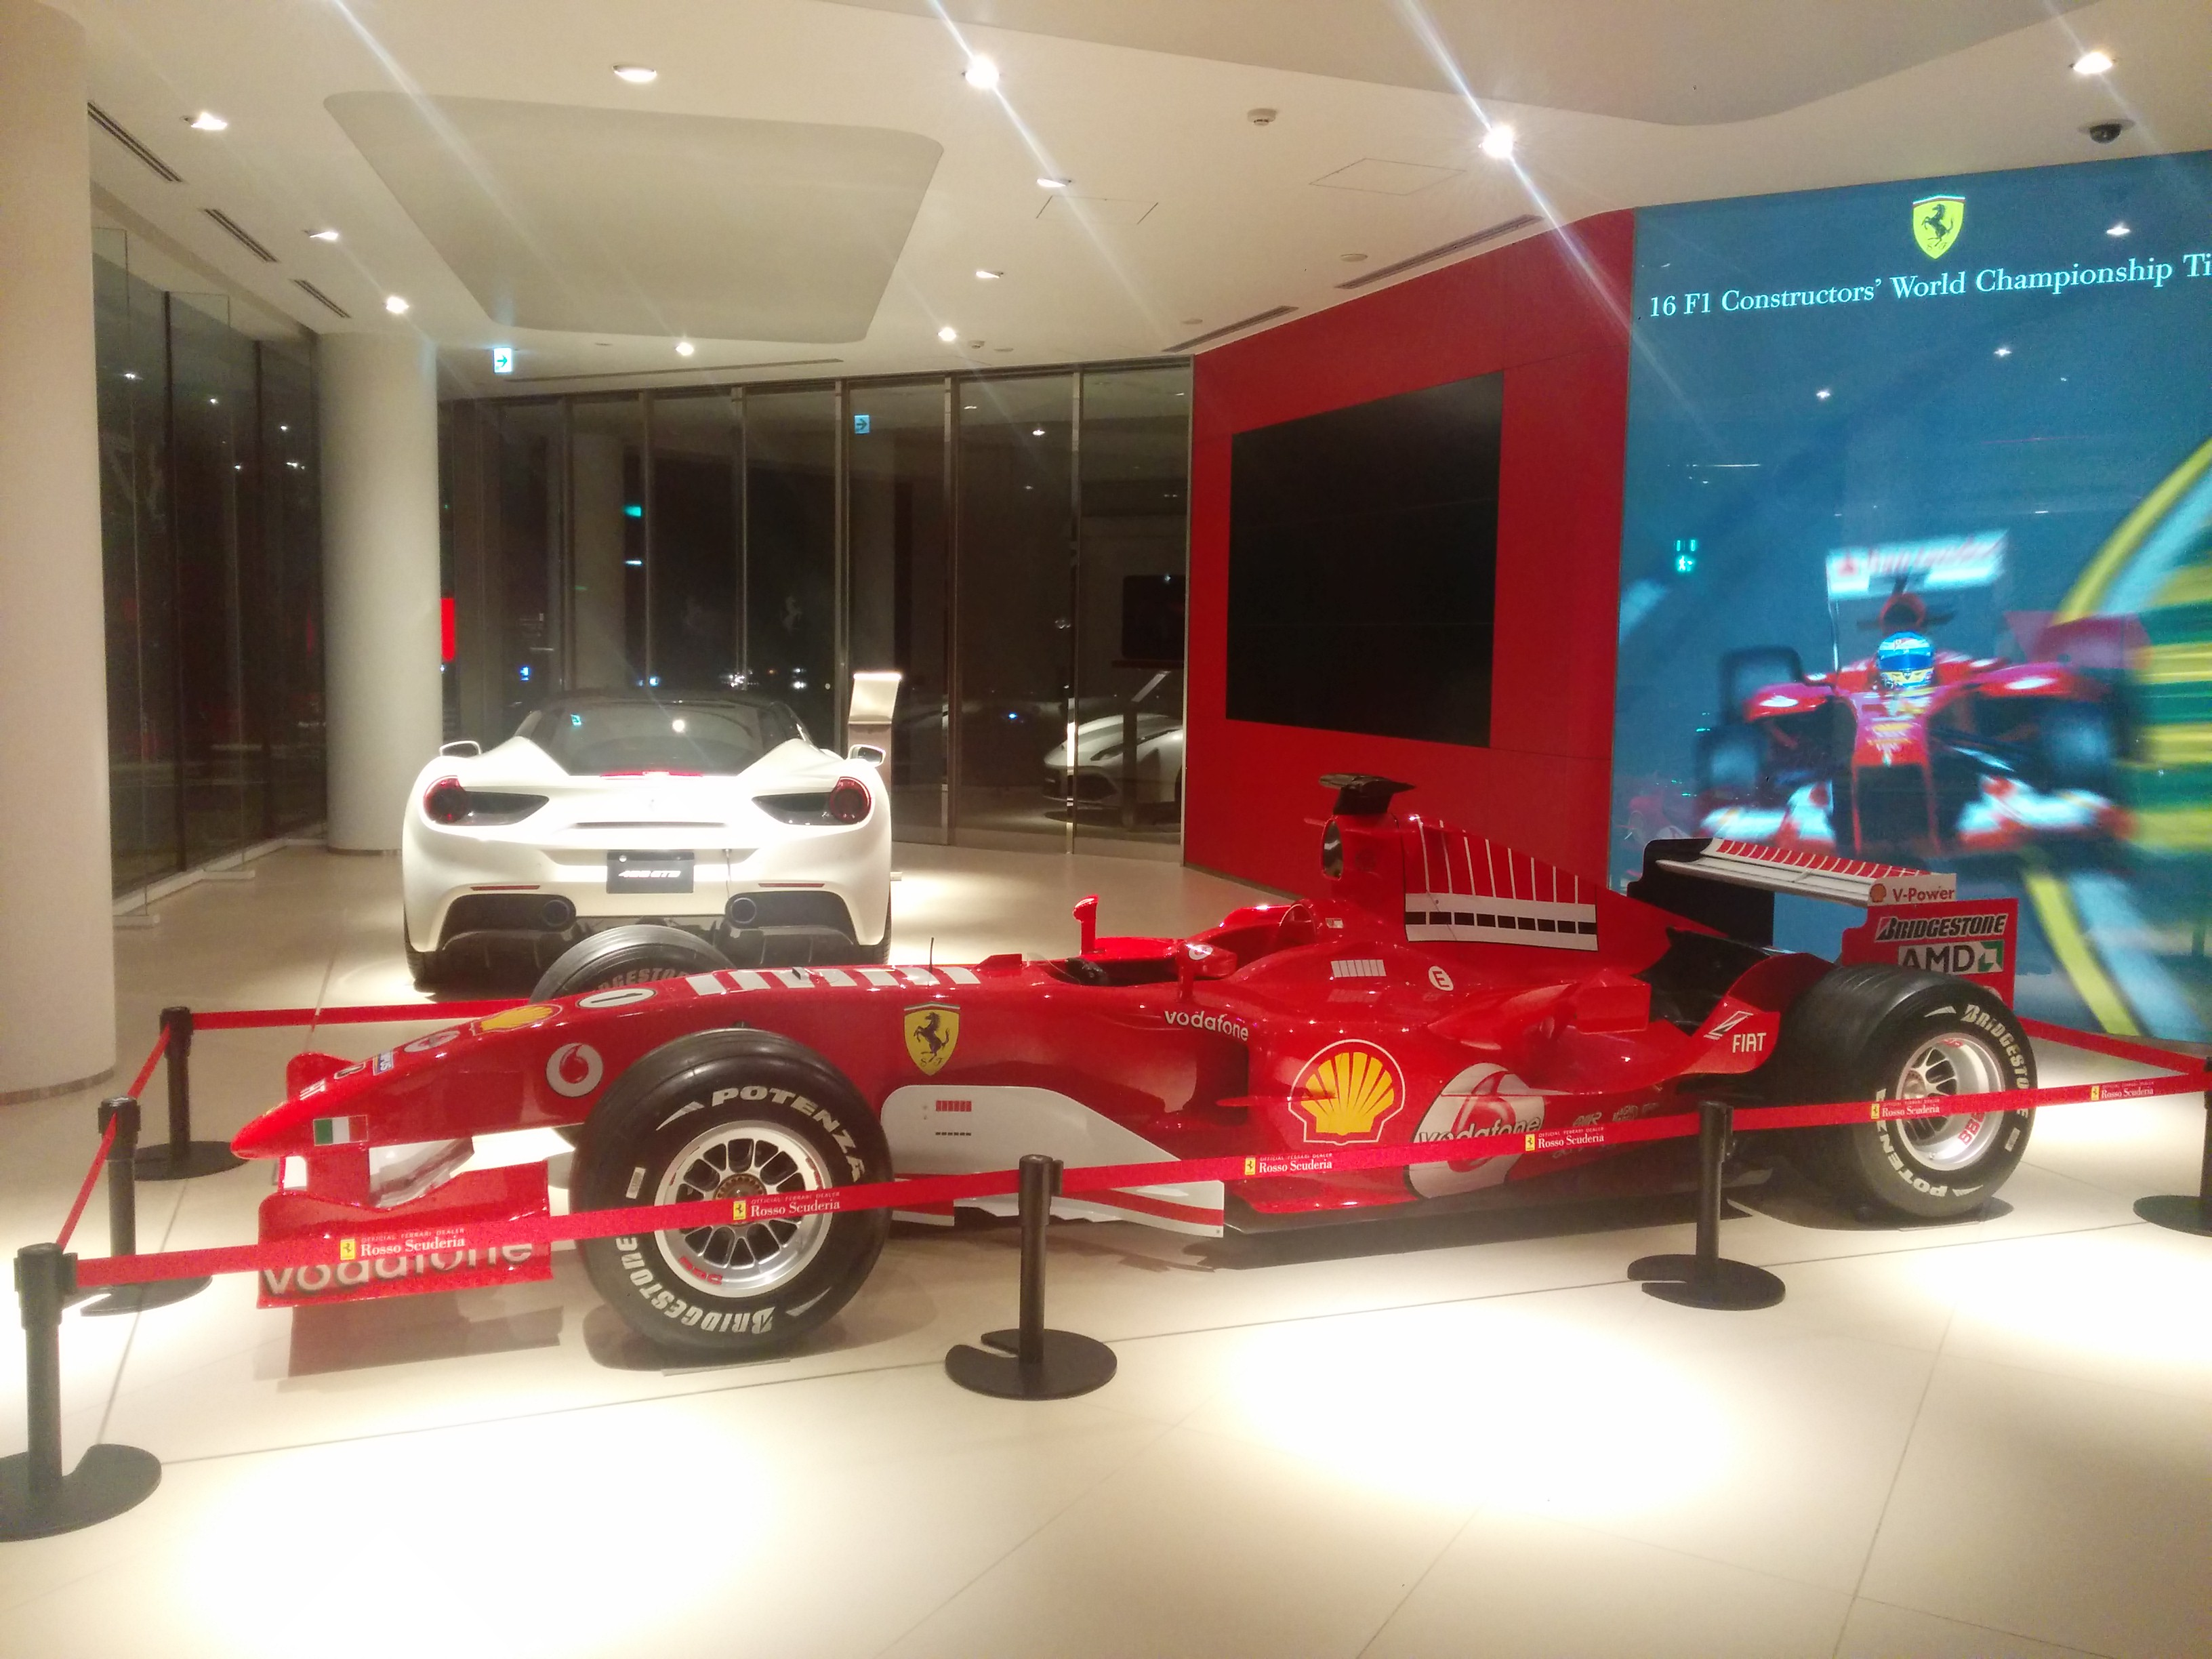 decor and design ferrari decor and design ファイル:Ferrari store in Roppongi 飯倉片町.jpg